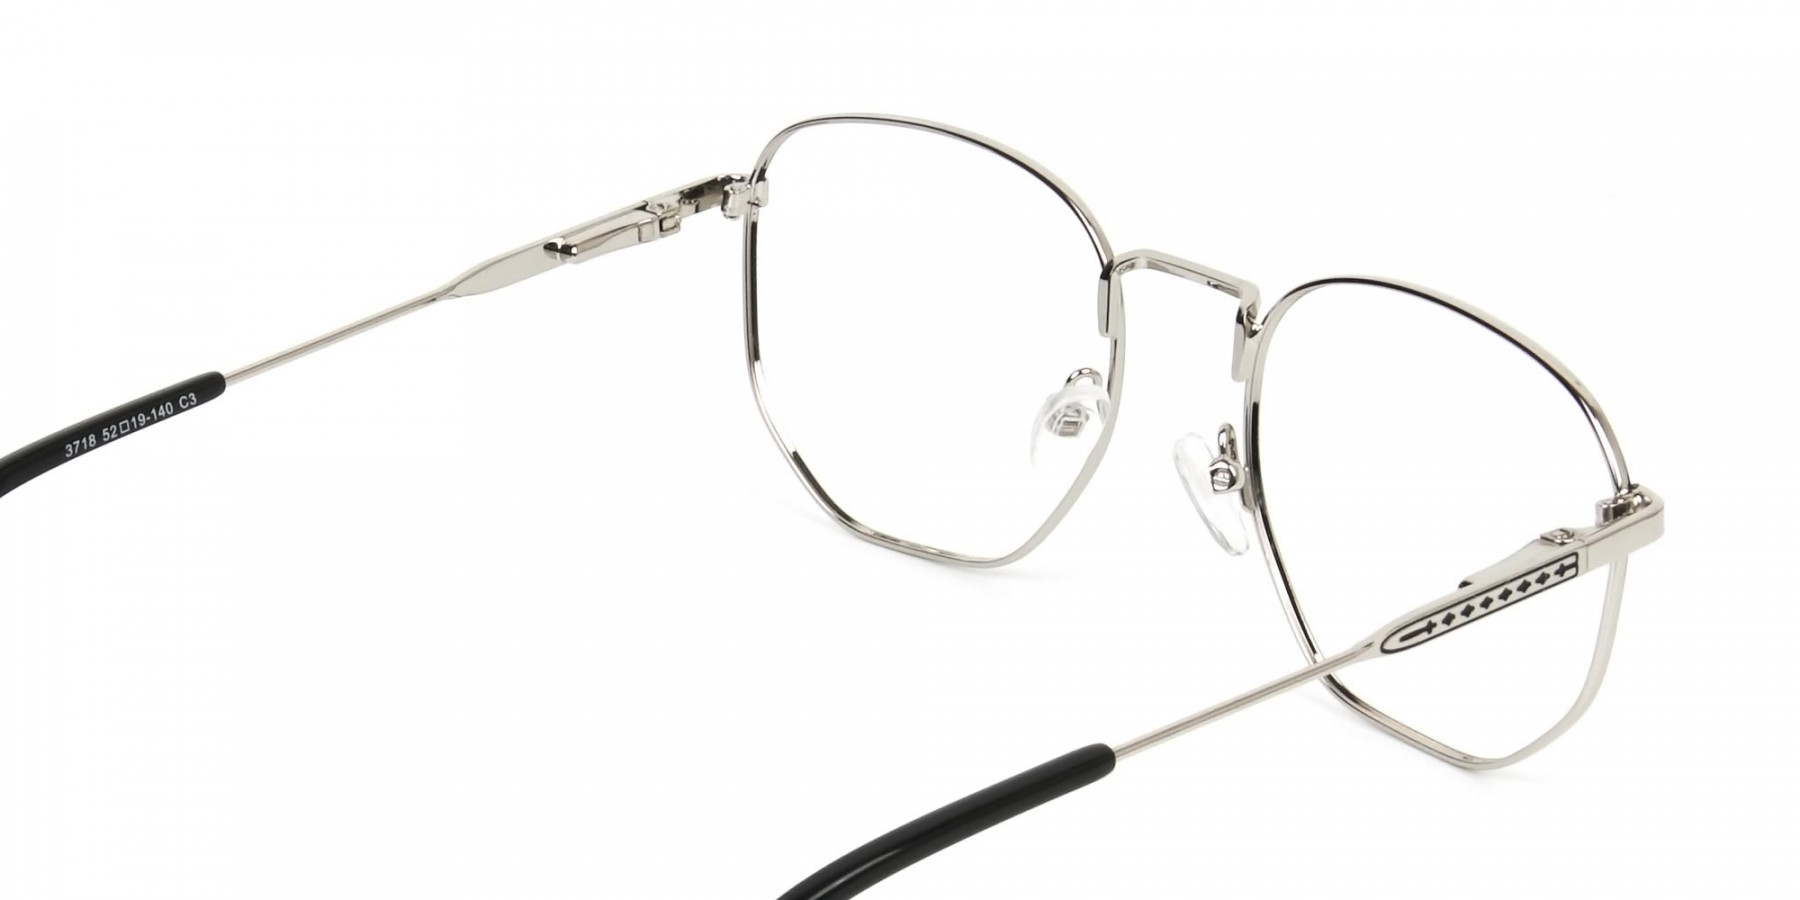 Geometric Black & Silver Spectacles - 1